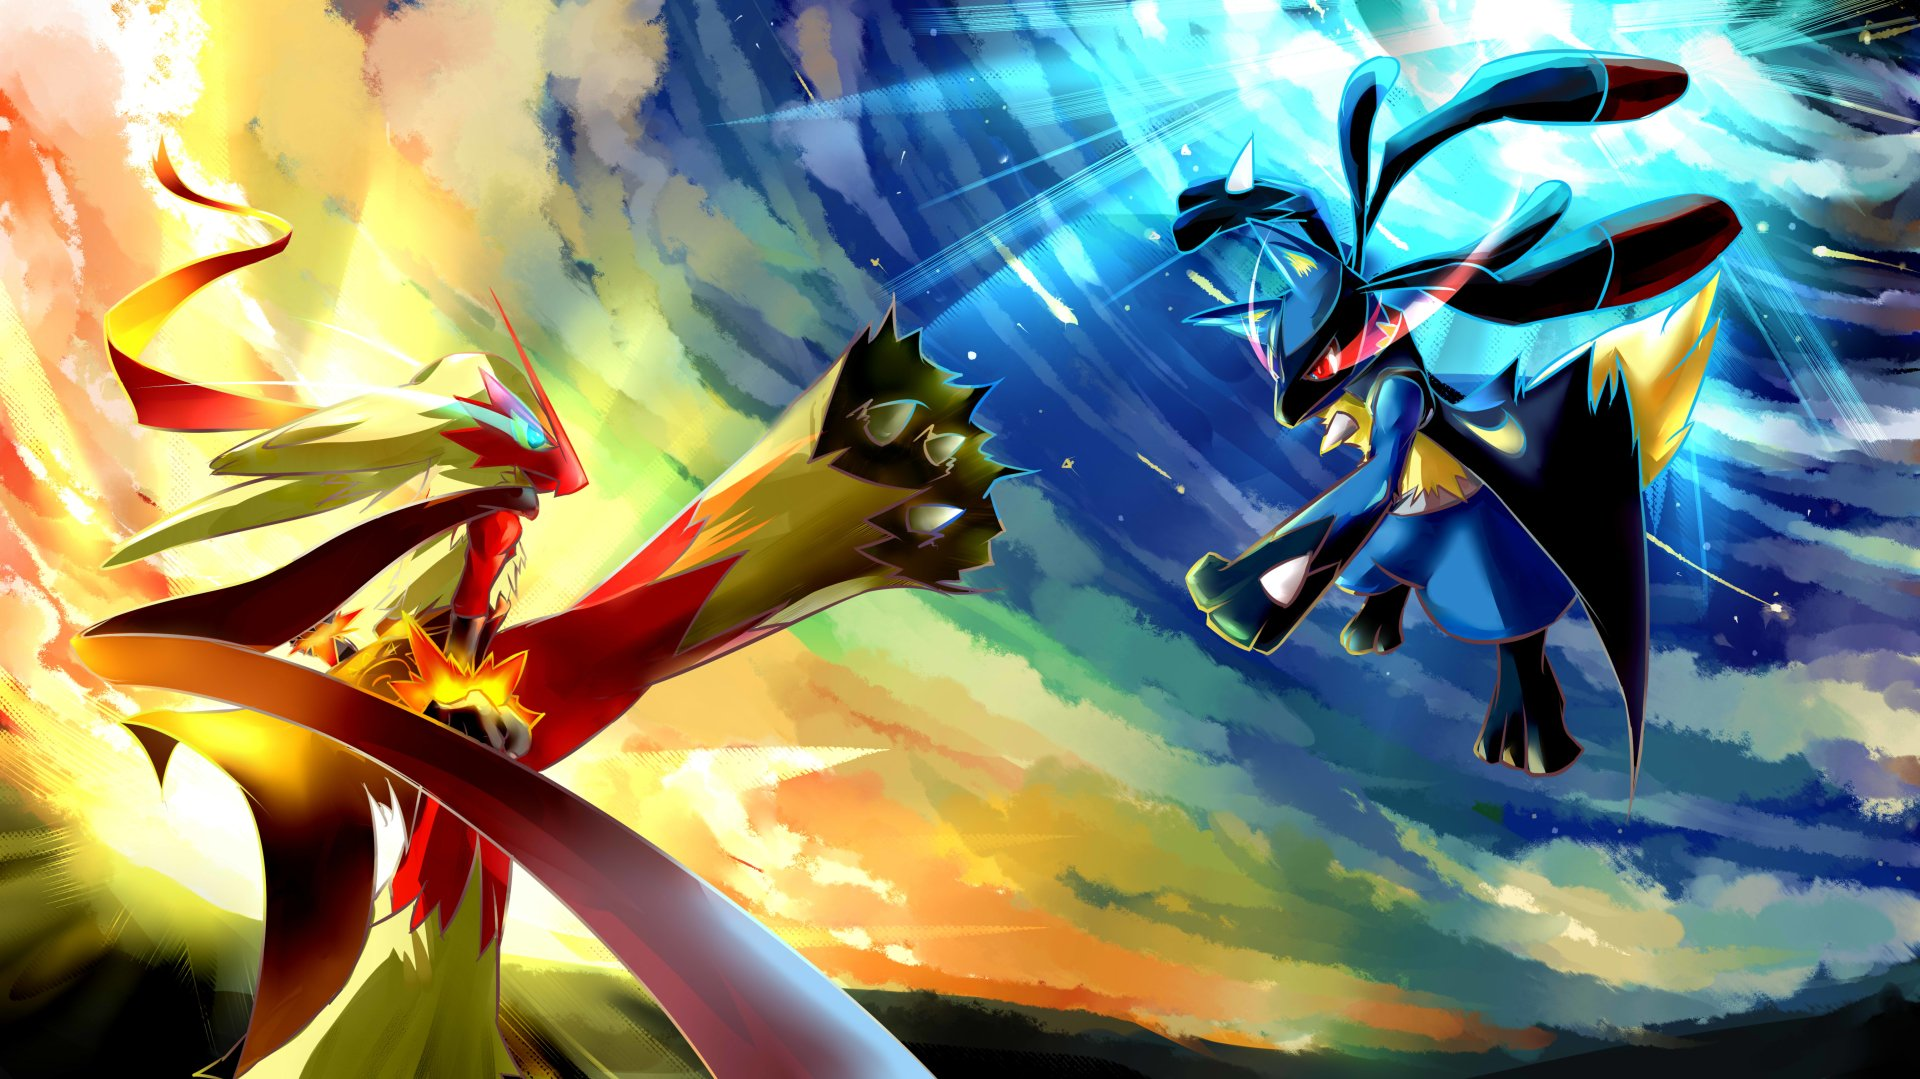 110 4k Ultra Hd Pokemon Wallpapers Background Images Wallpaper